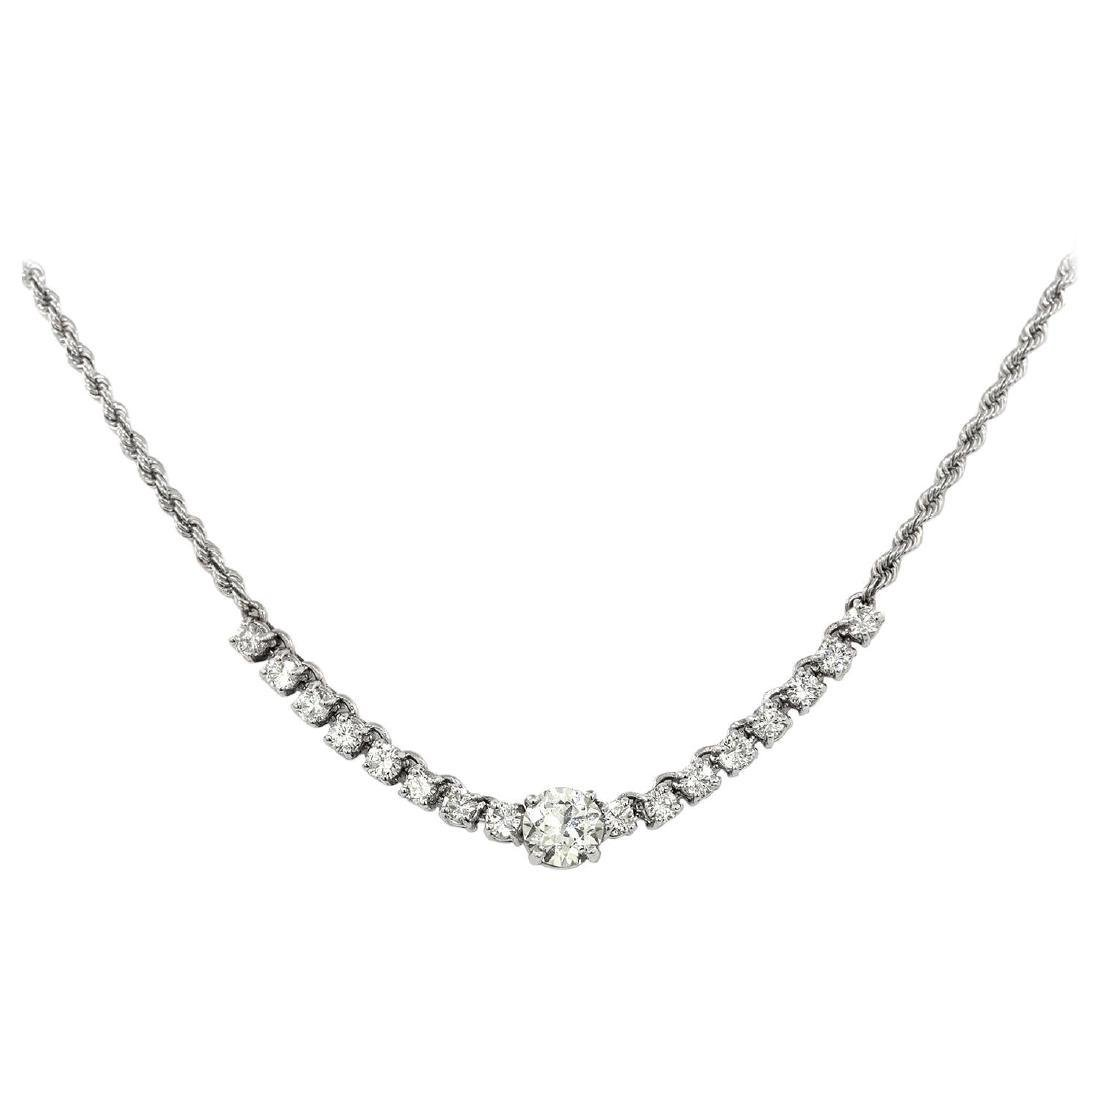 18 Karat Vintage Diamond Necklace